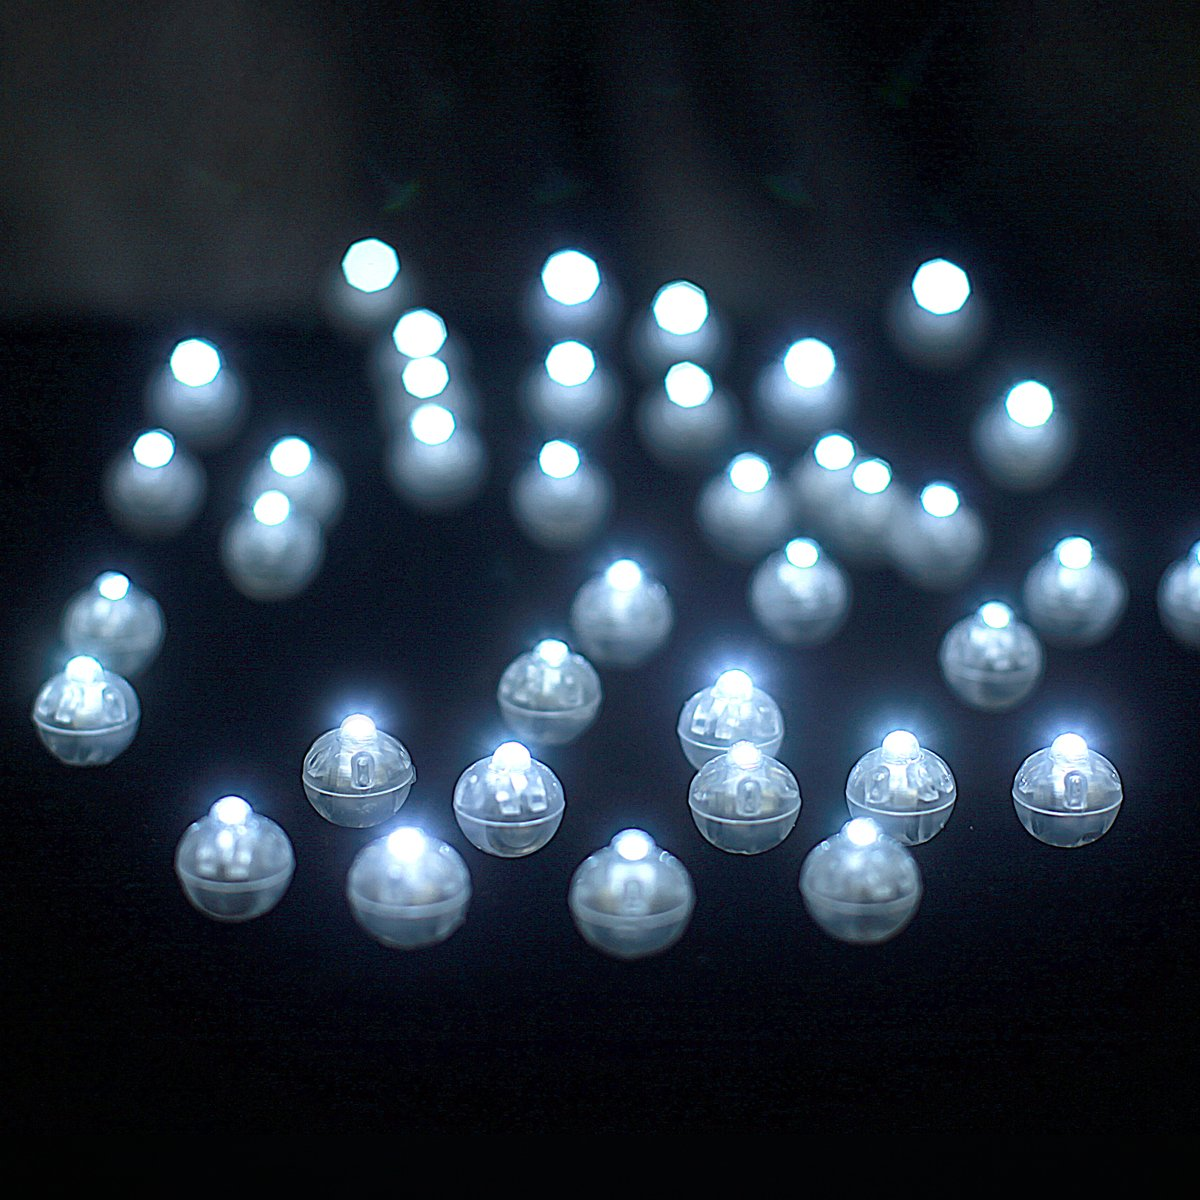 Amy Basic (100 Pcs) White Round Led Flash Ball Lamp for Paper Lantern Balloon Party Wedding ,Party Birthday and Festival Decorative Lights